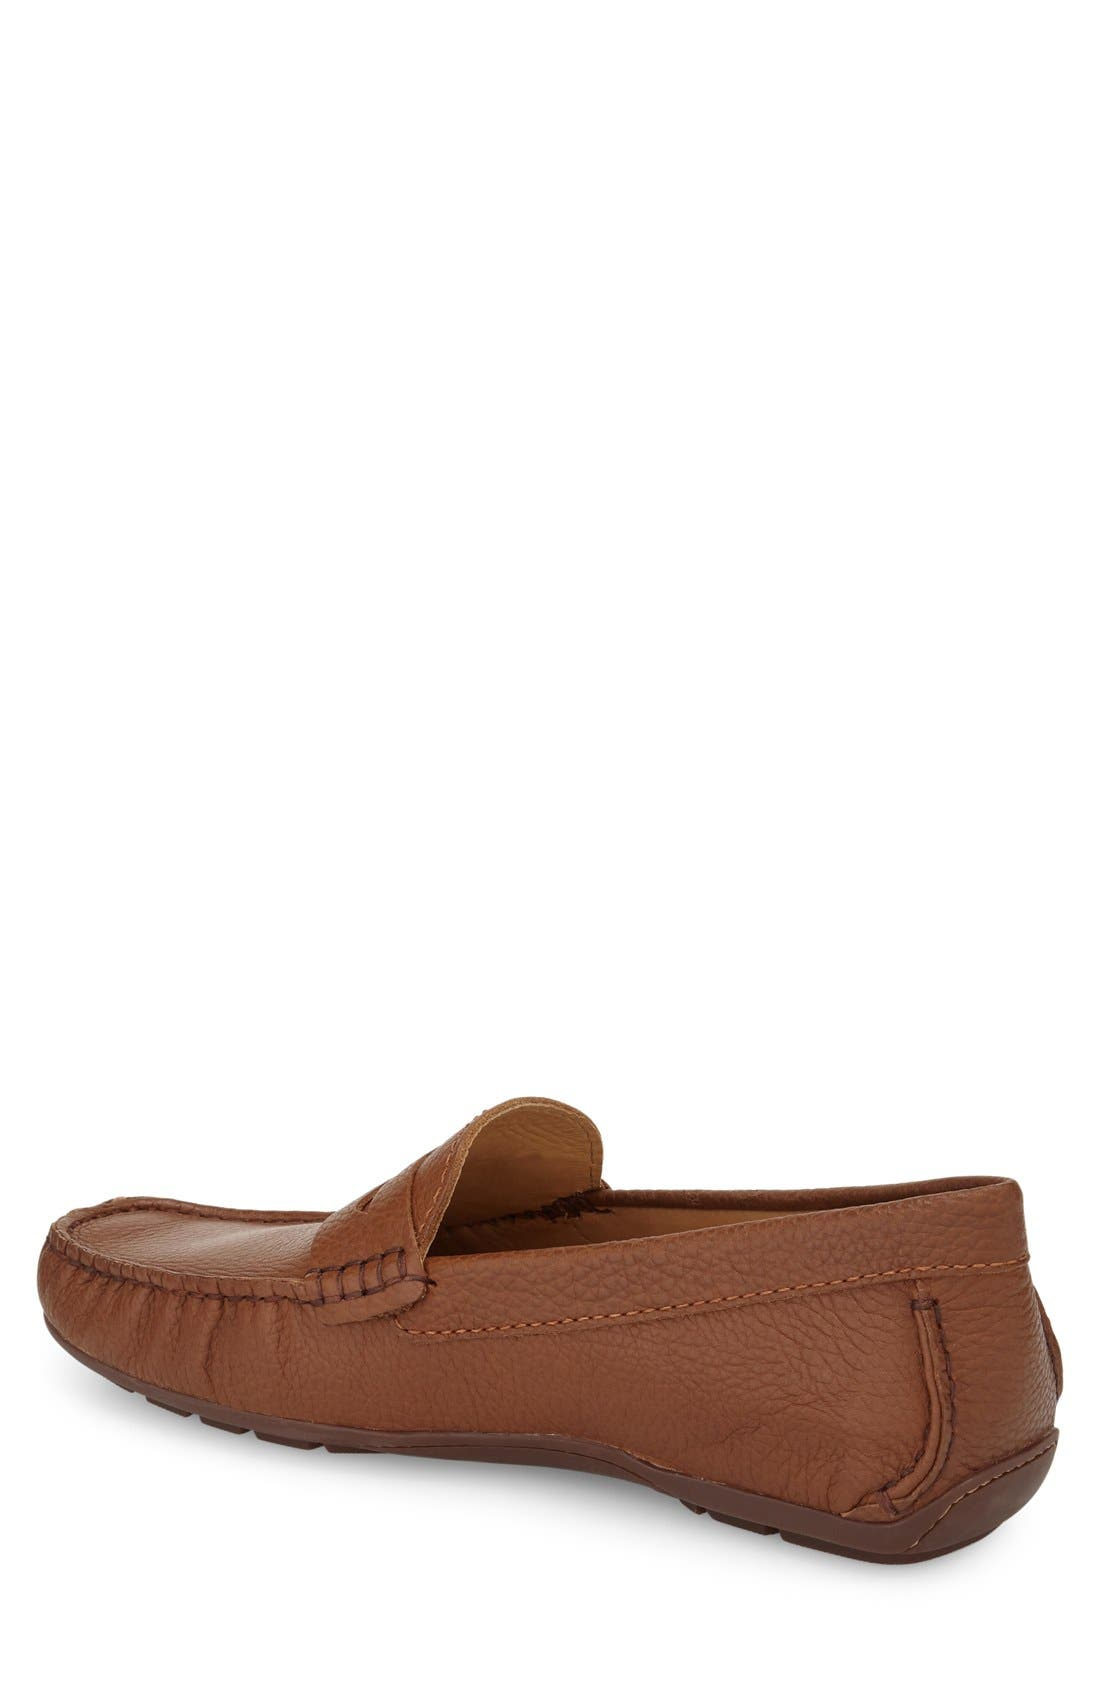 'Union Street' Penny Loafer,                             Alternate thumbnail 14, color,